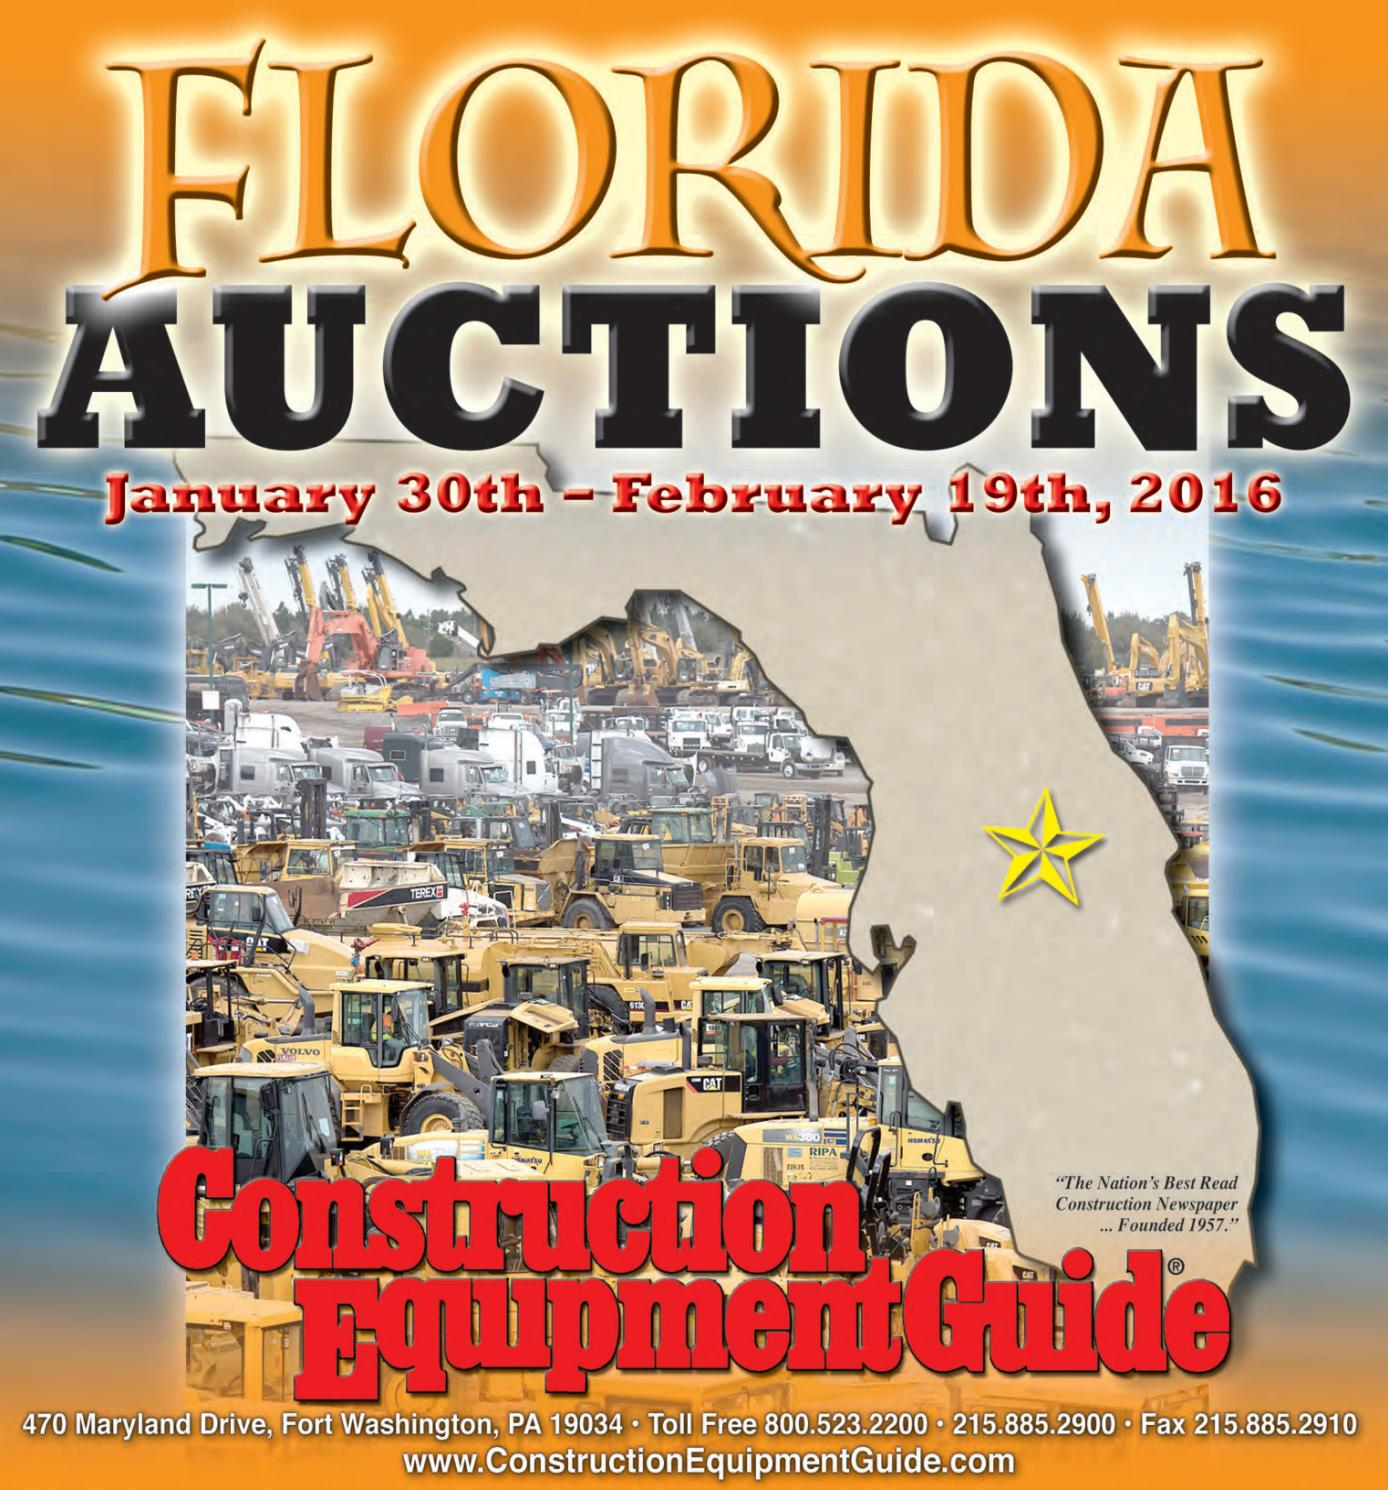 Florida Auctions 2016 by Construction Equipment Guide - issuu